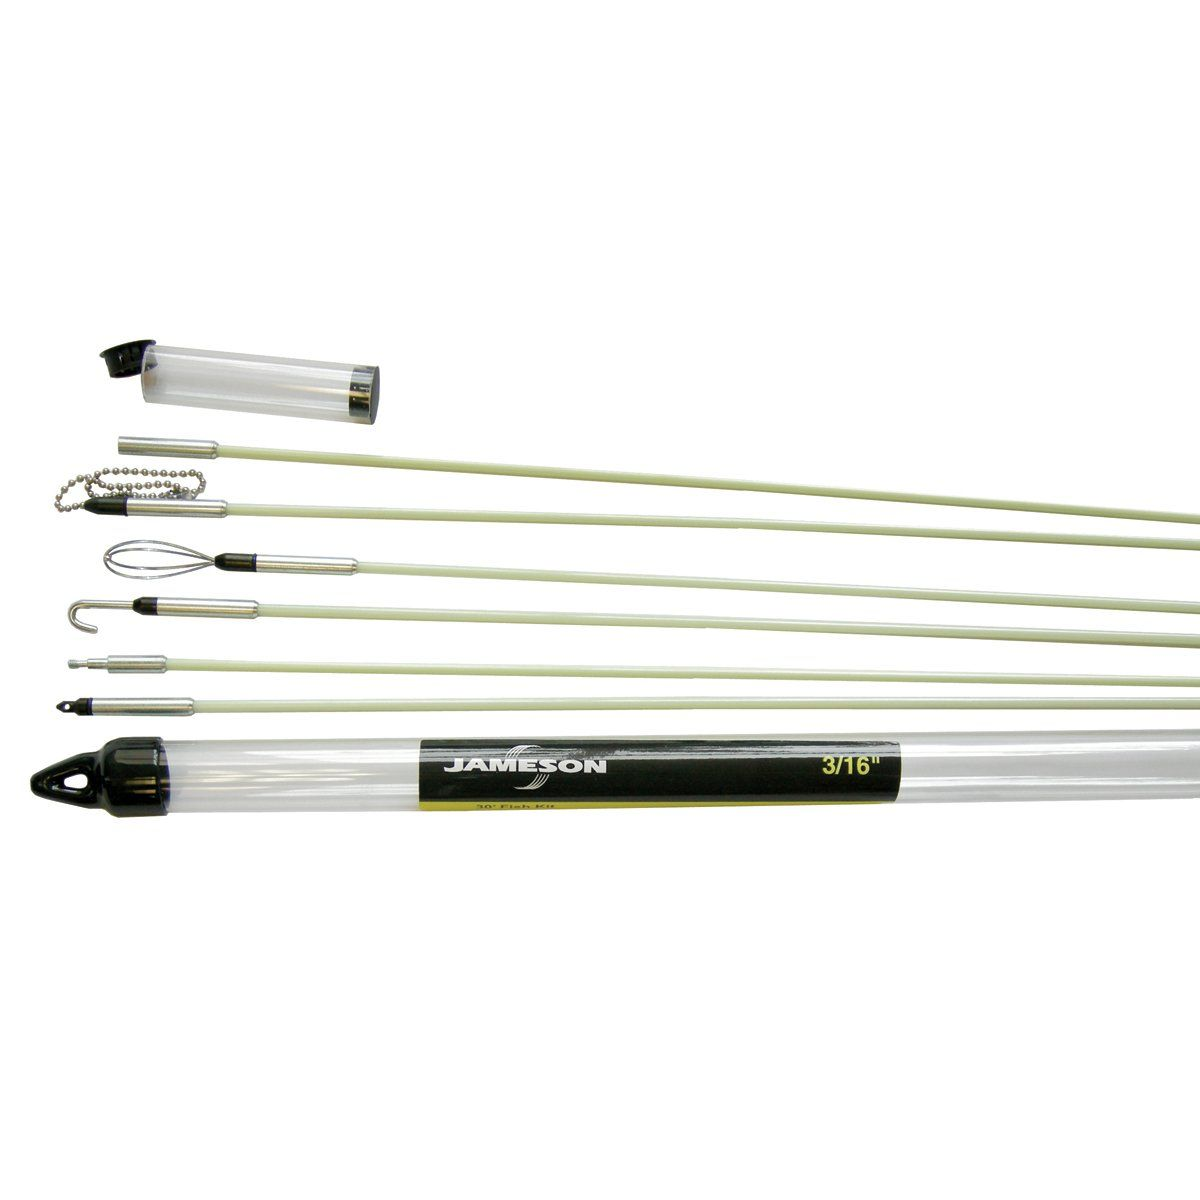 Jameson 7s65k Deluxe Glow Rod Wire Electrical Fishing Kit With Accessories And 30 Total Feet Of Fiberglass Rod Details Can Be Found By Clicking On Th Glow Fish